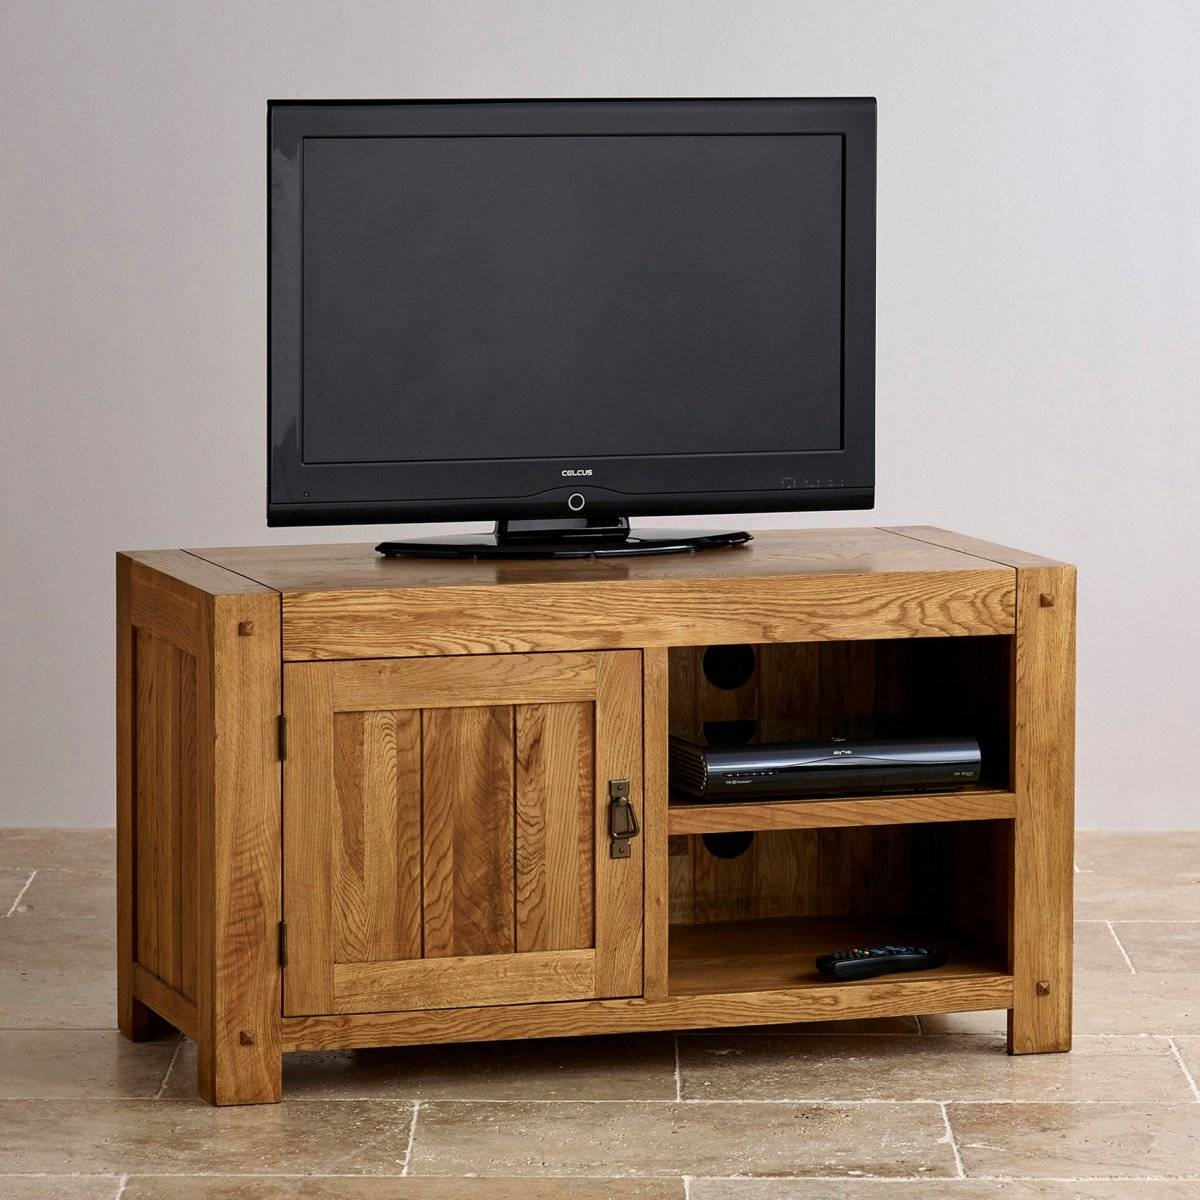 Quercus Tv Cabinet In Rustic Solid Oak | Oak Furniture Land within Hardwood Tv Stands (Image 9 of 15)